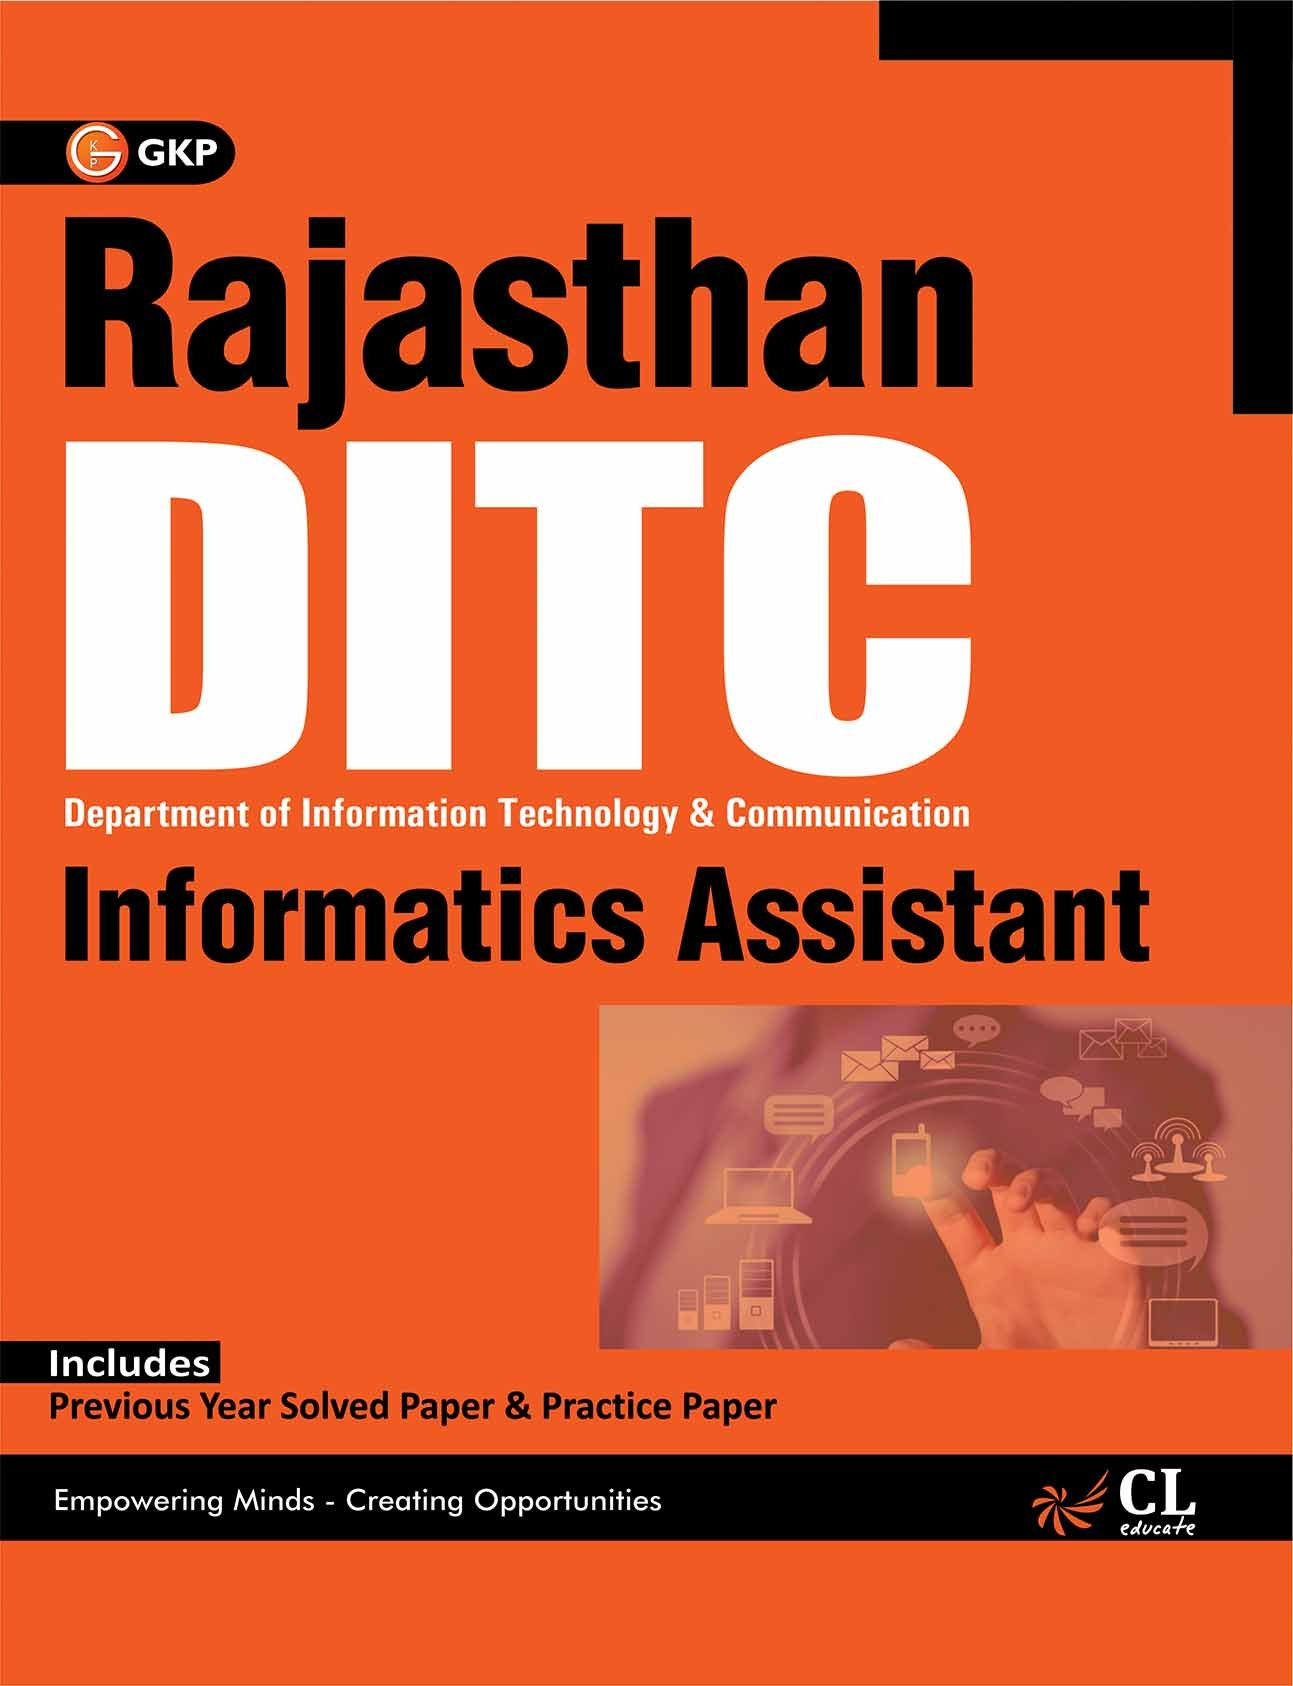 Buy Rajasthan DITC - Informatics Assistant Book Online at